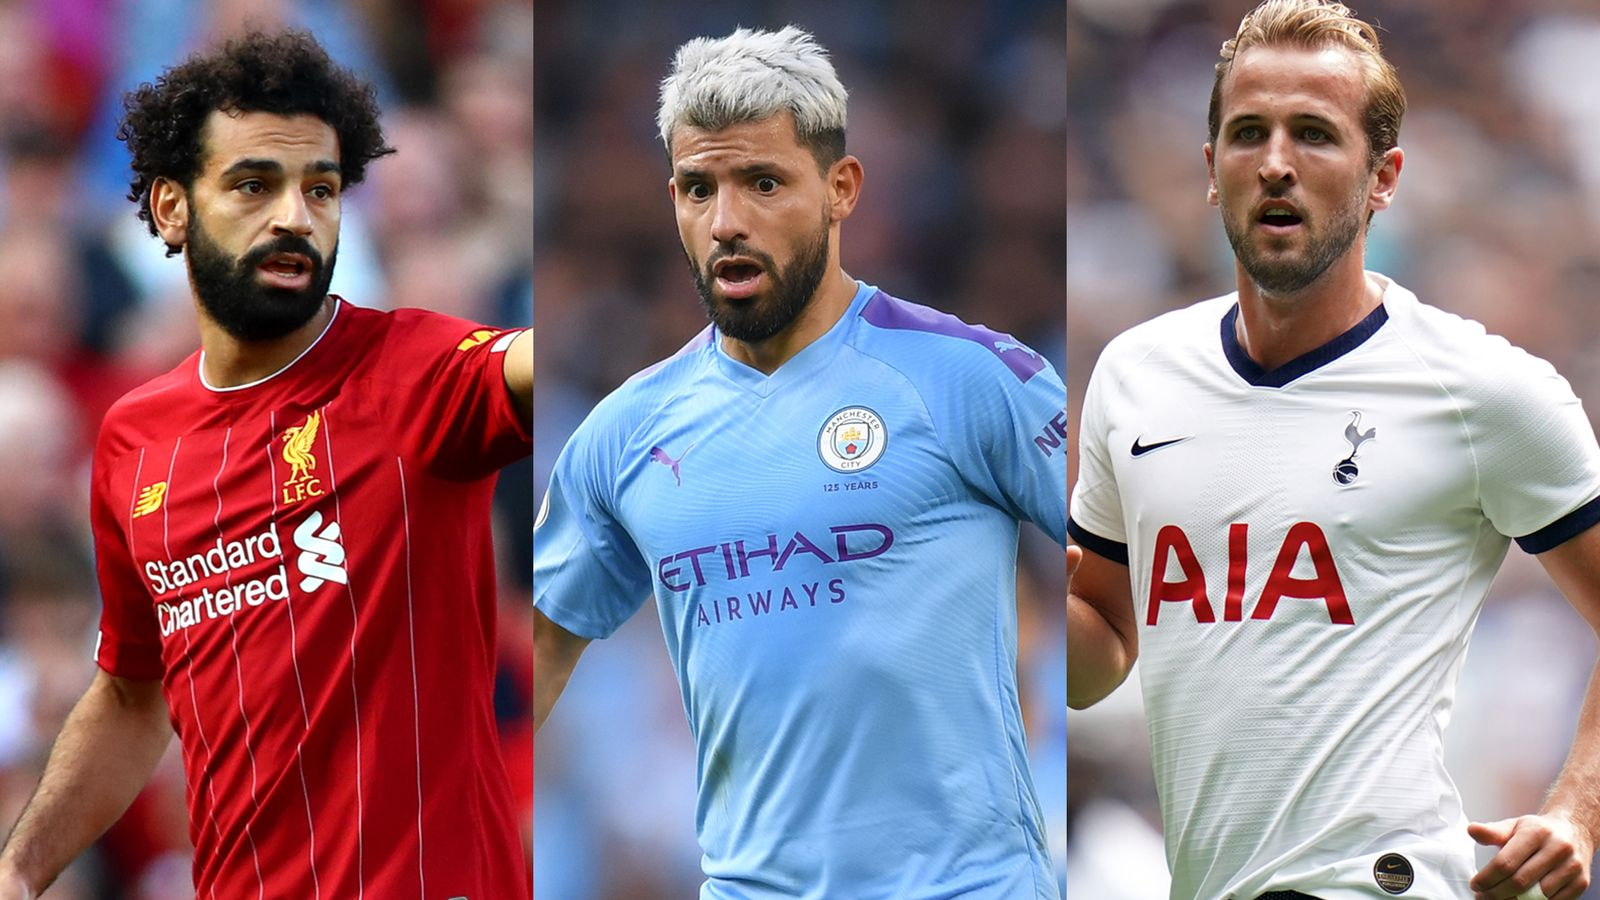 PL squads confirmed for 2019/20 season